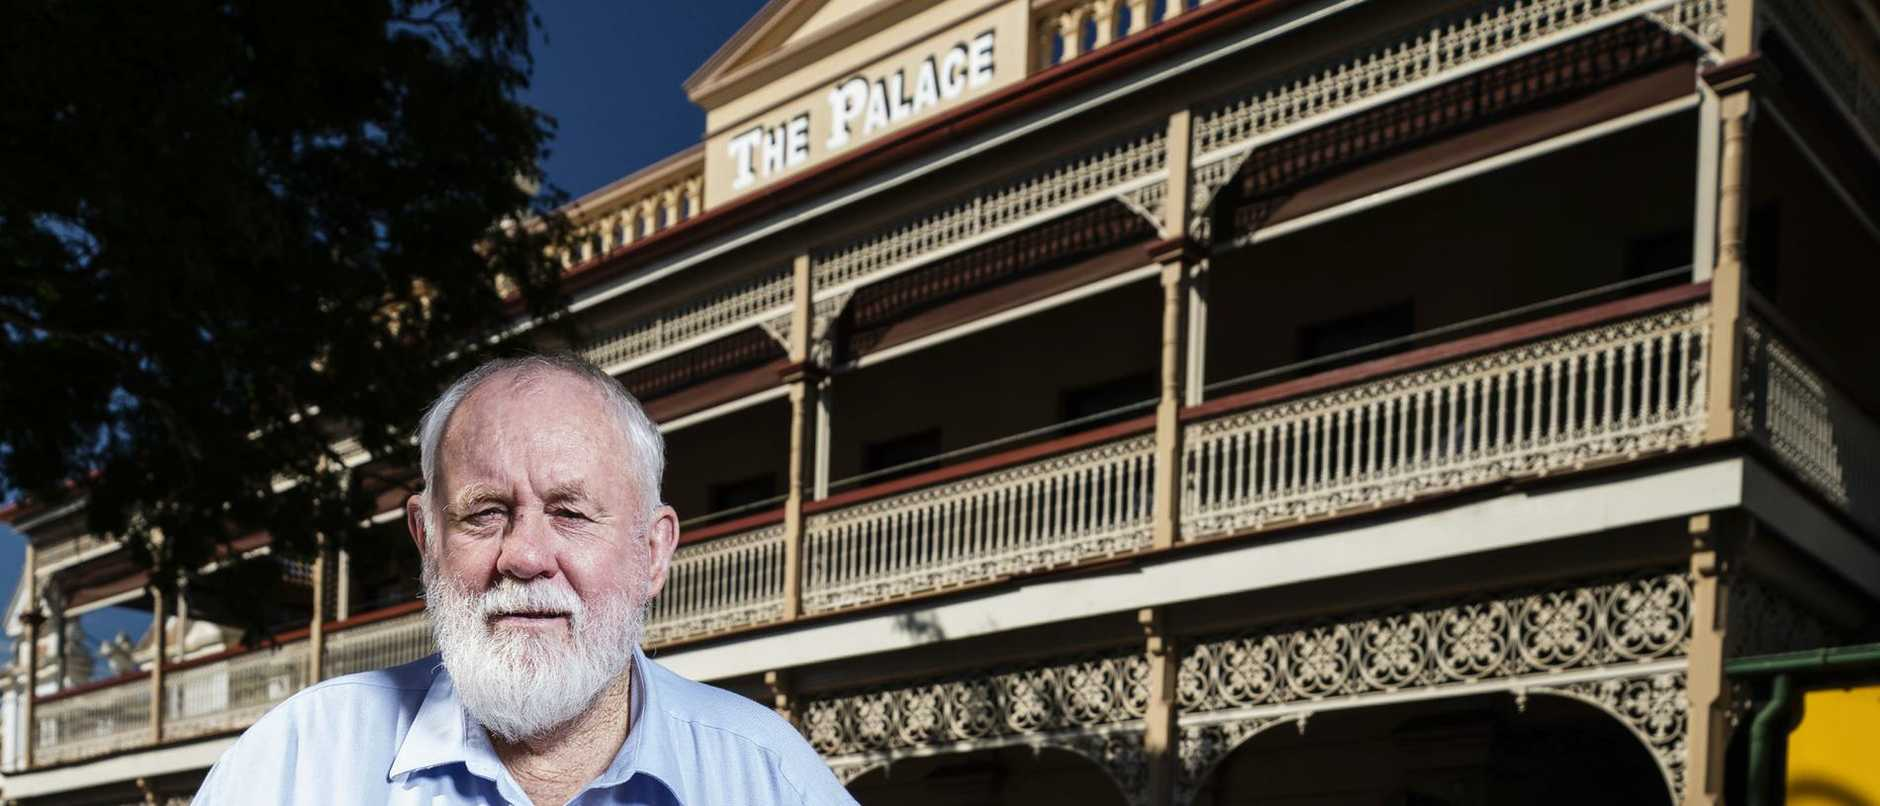 He was the mayor of a small town who had to deal with 15 dead backpackers and their grieving families. Now Bill Trevor tells of the toll it had on him.